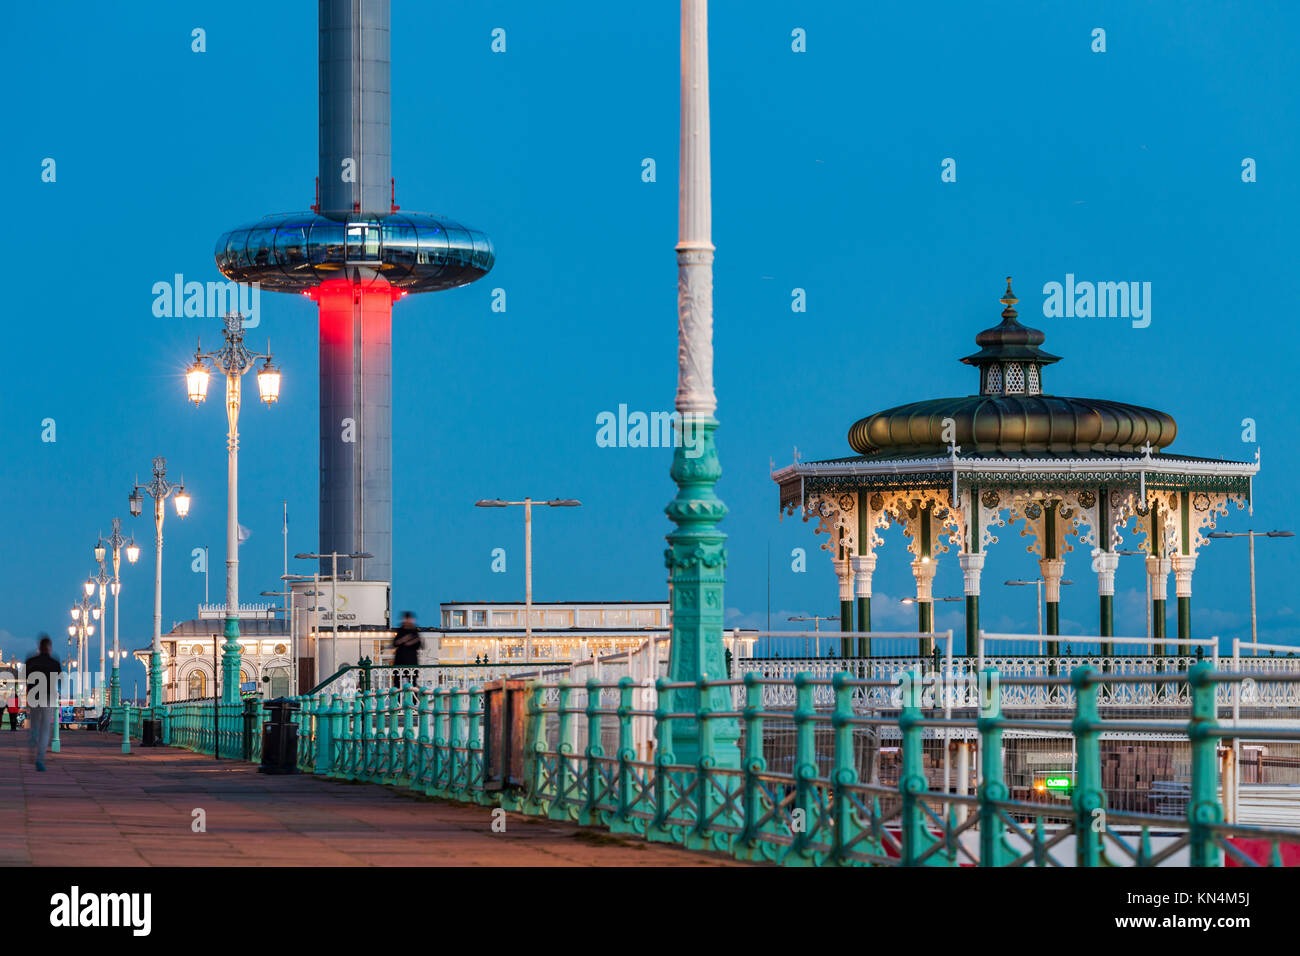 NIght falls on Brighton seafront, UK. Victorian Bandstand and i360 tower in the distance. - Stock Image